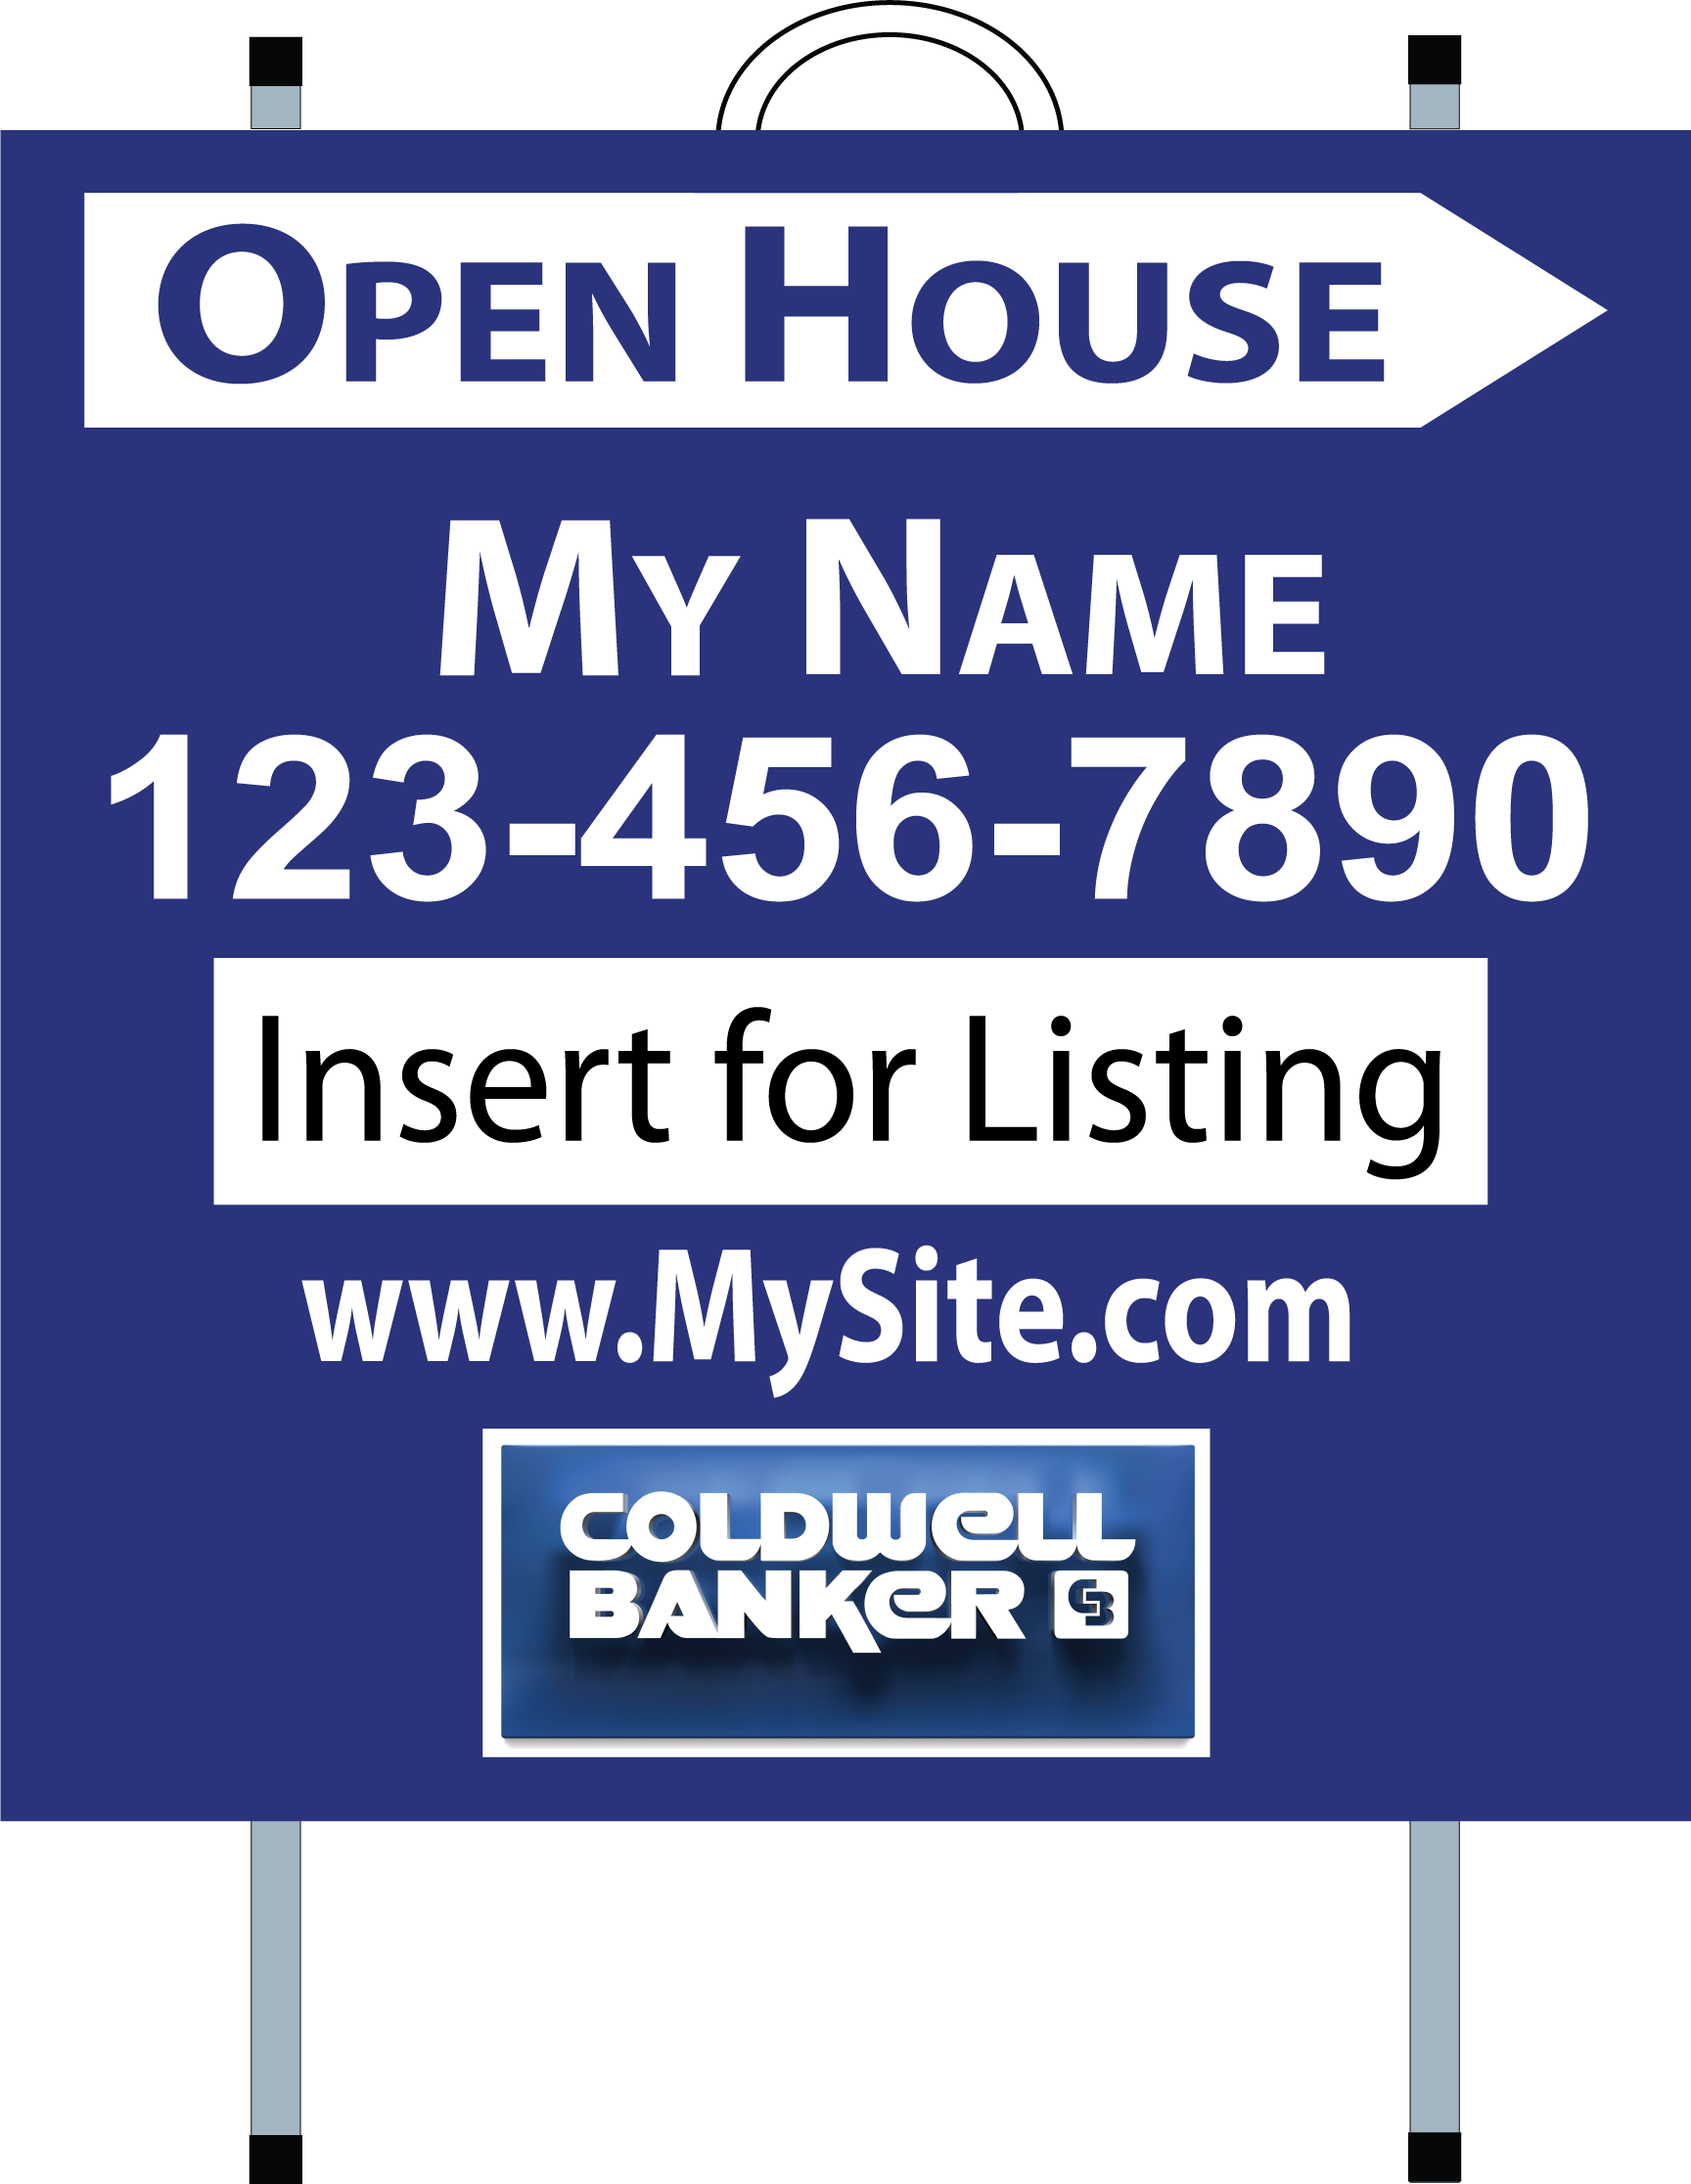 Coldwell Banker Real Estate Signs Yard Signs Open House Signs